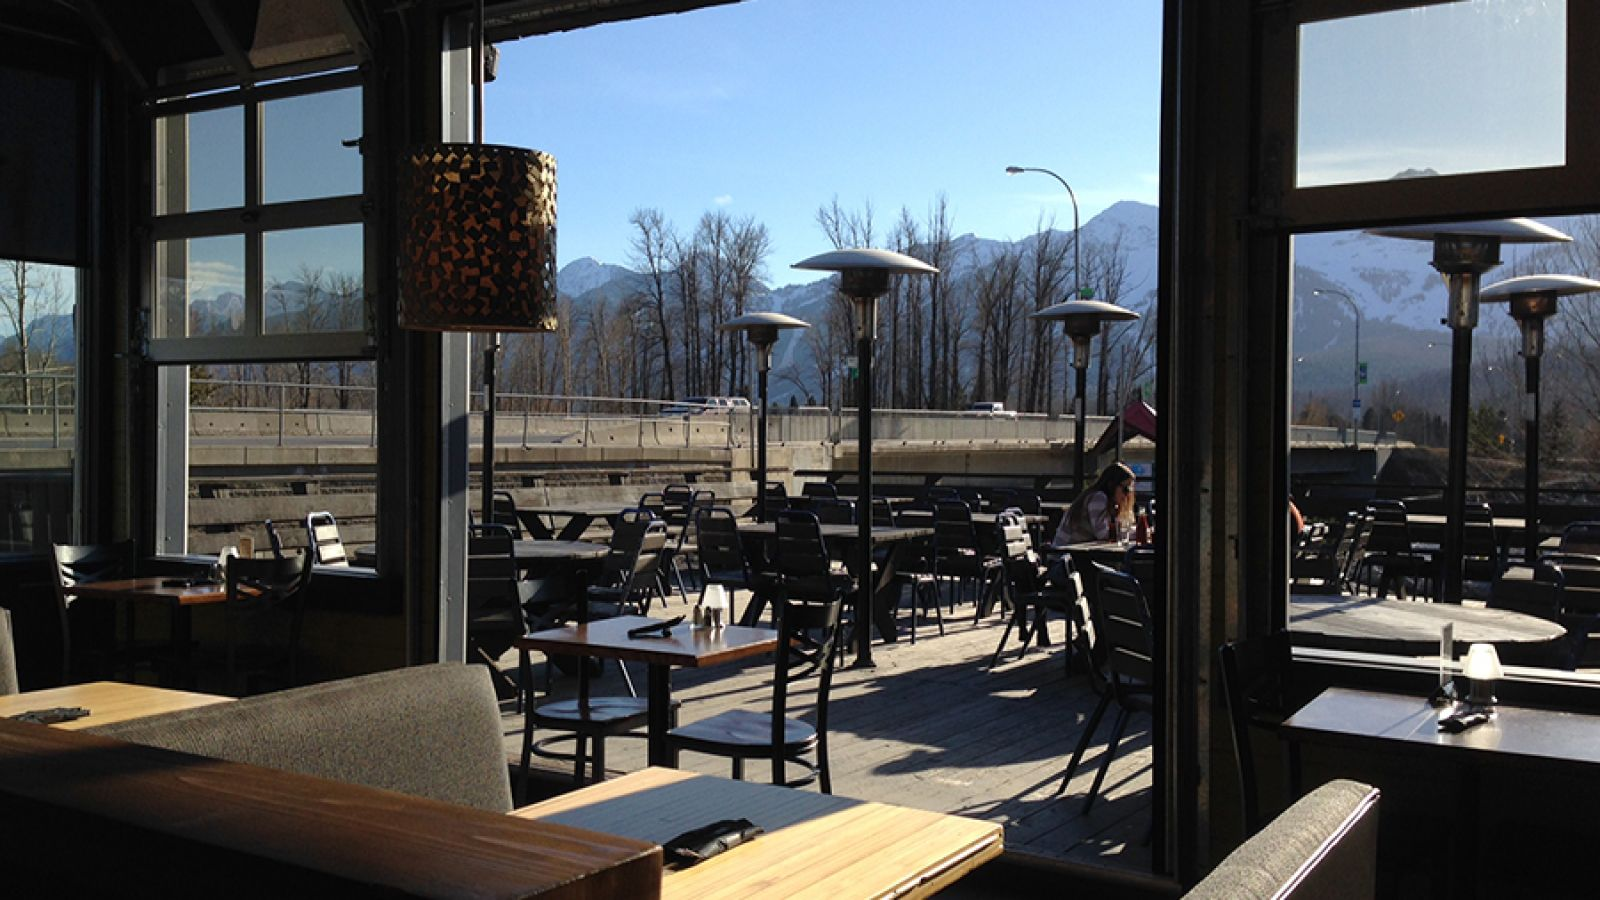 On sunny days, the overhead doors are opened to the patio.